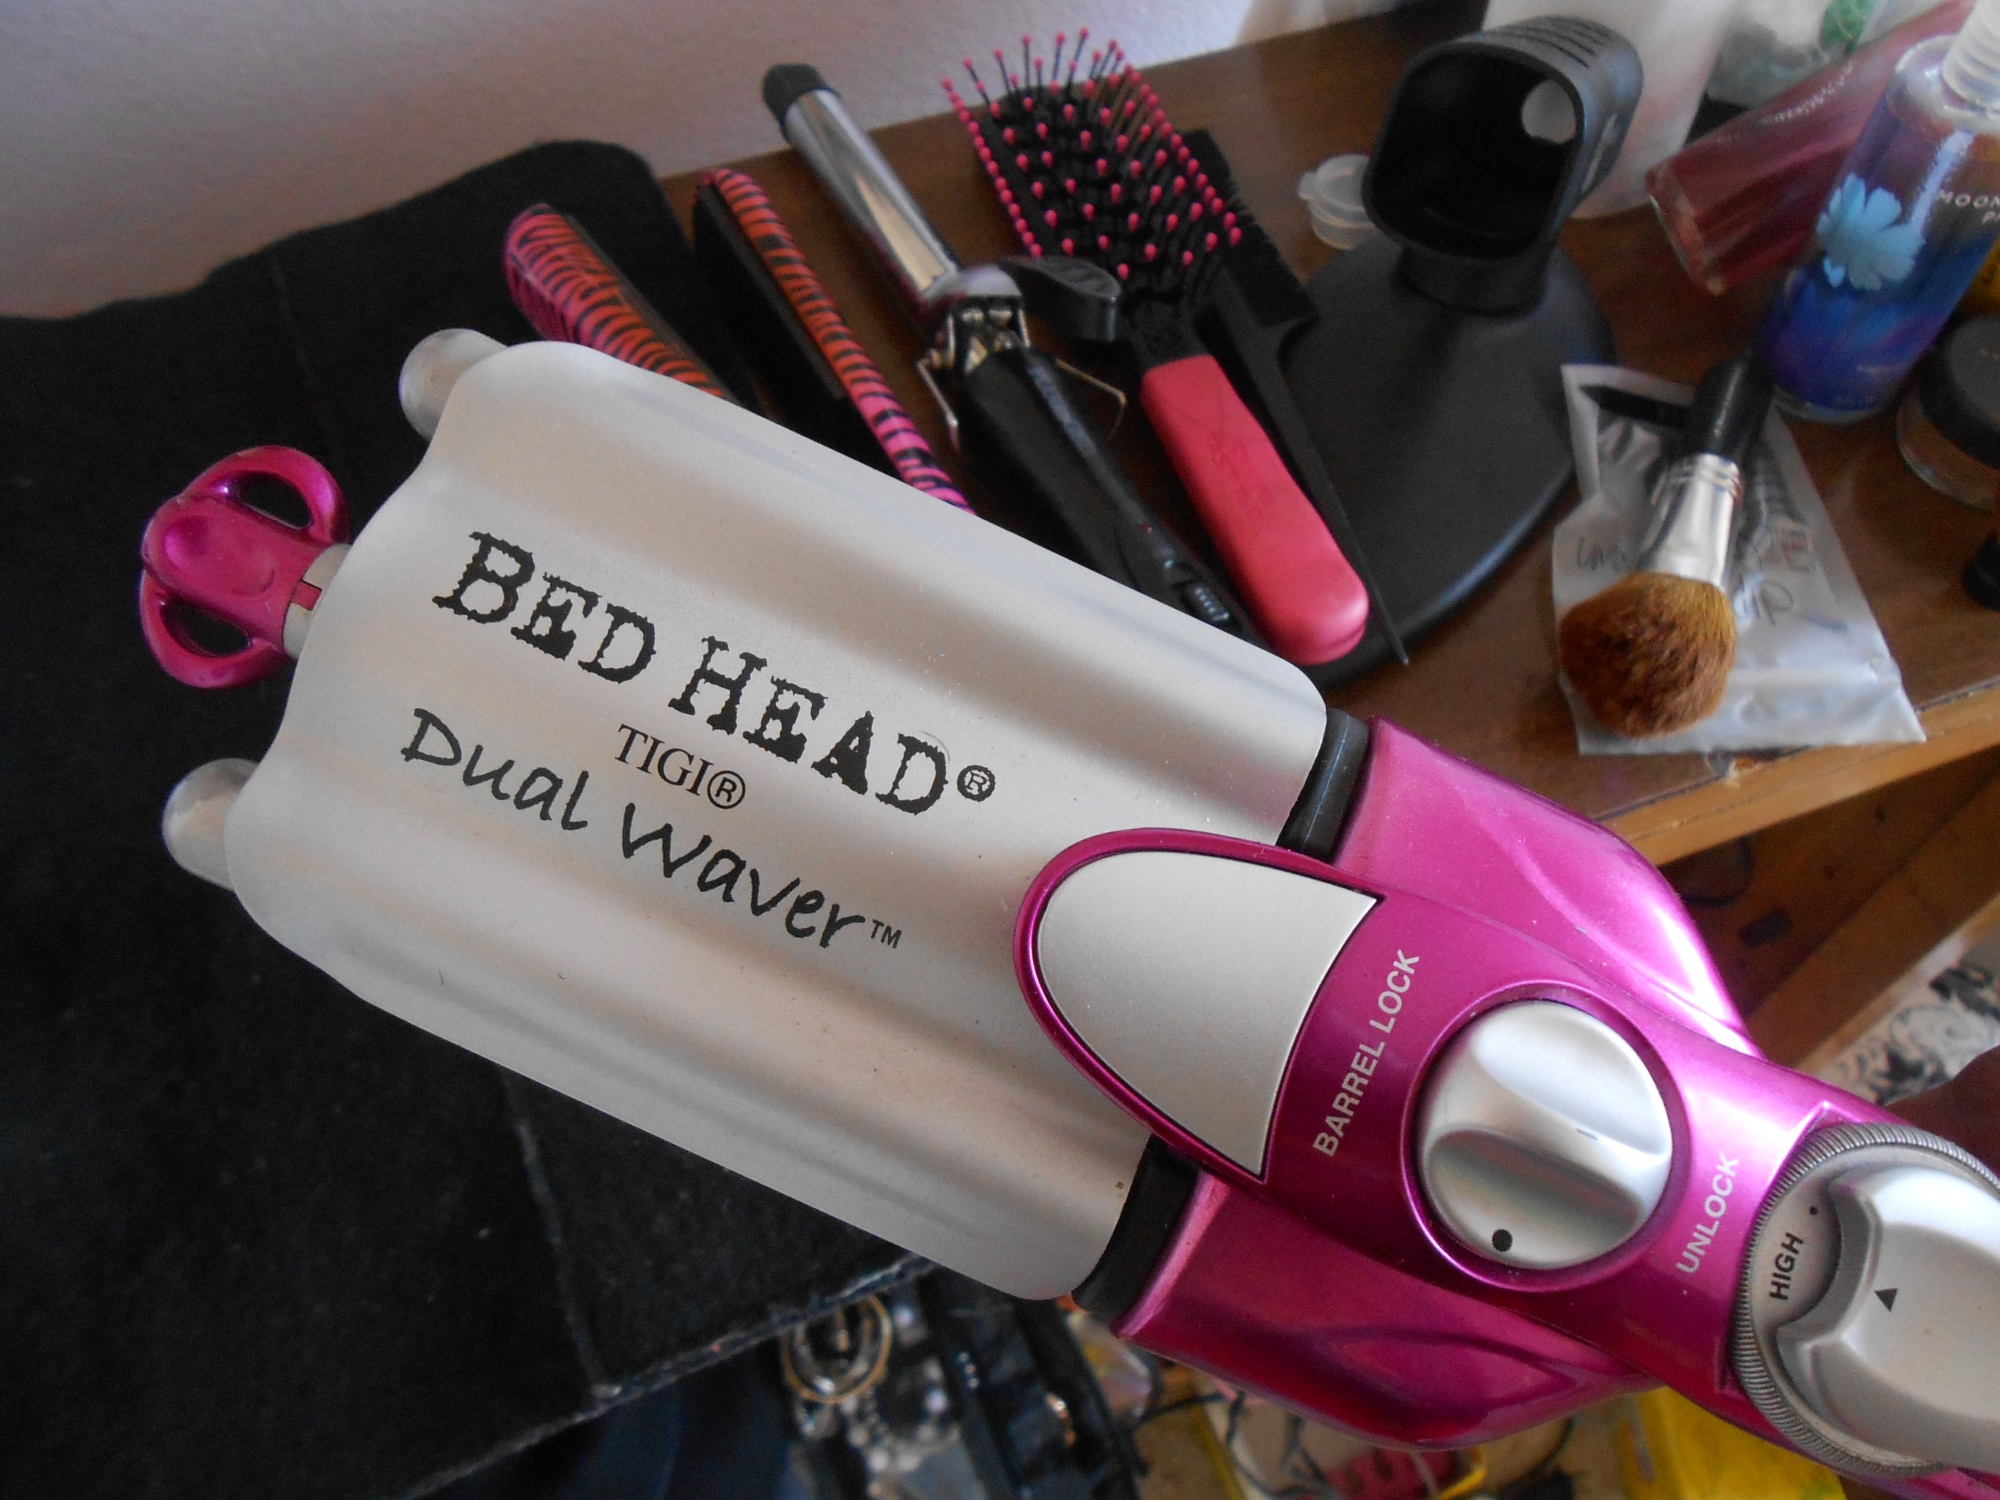 bed head dual waver review